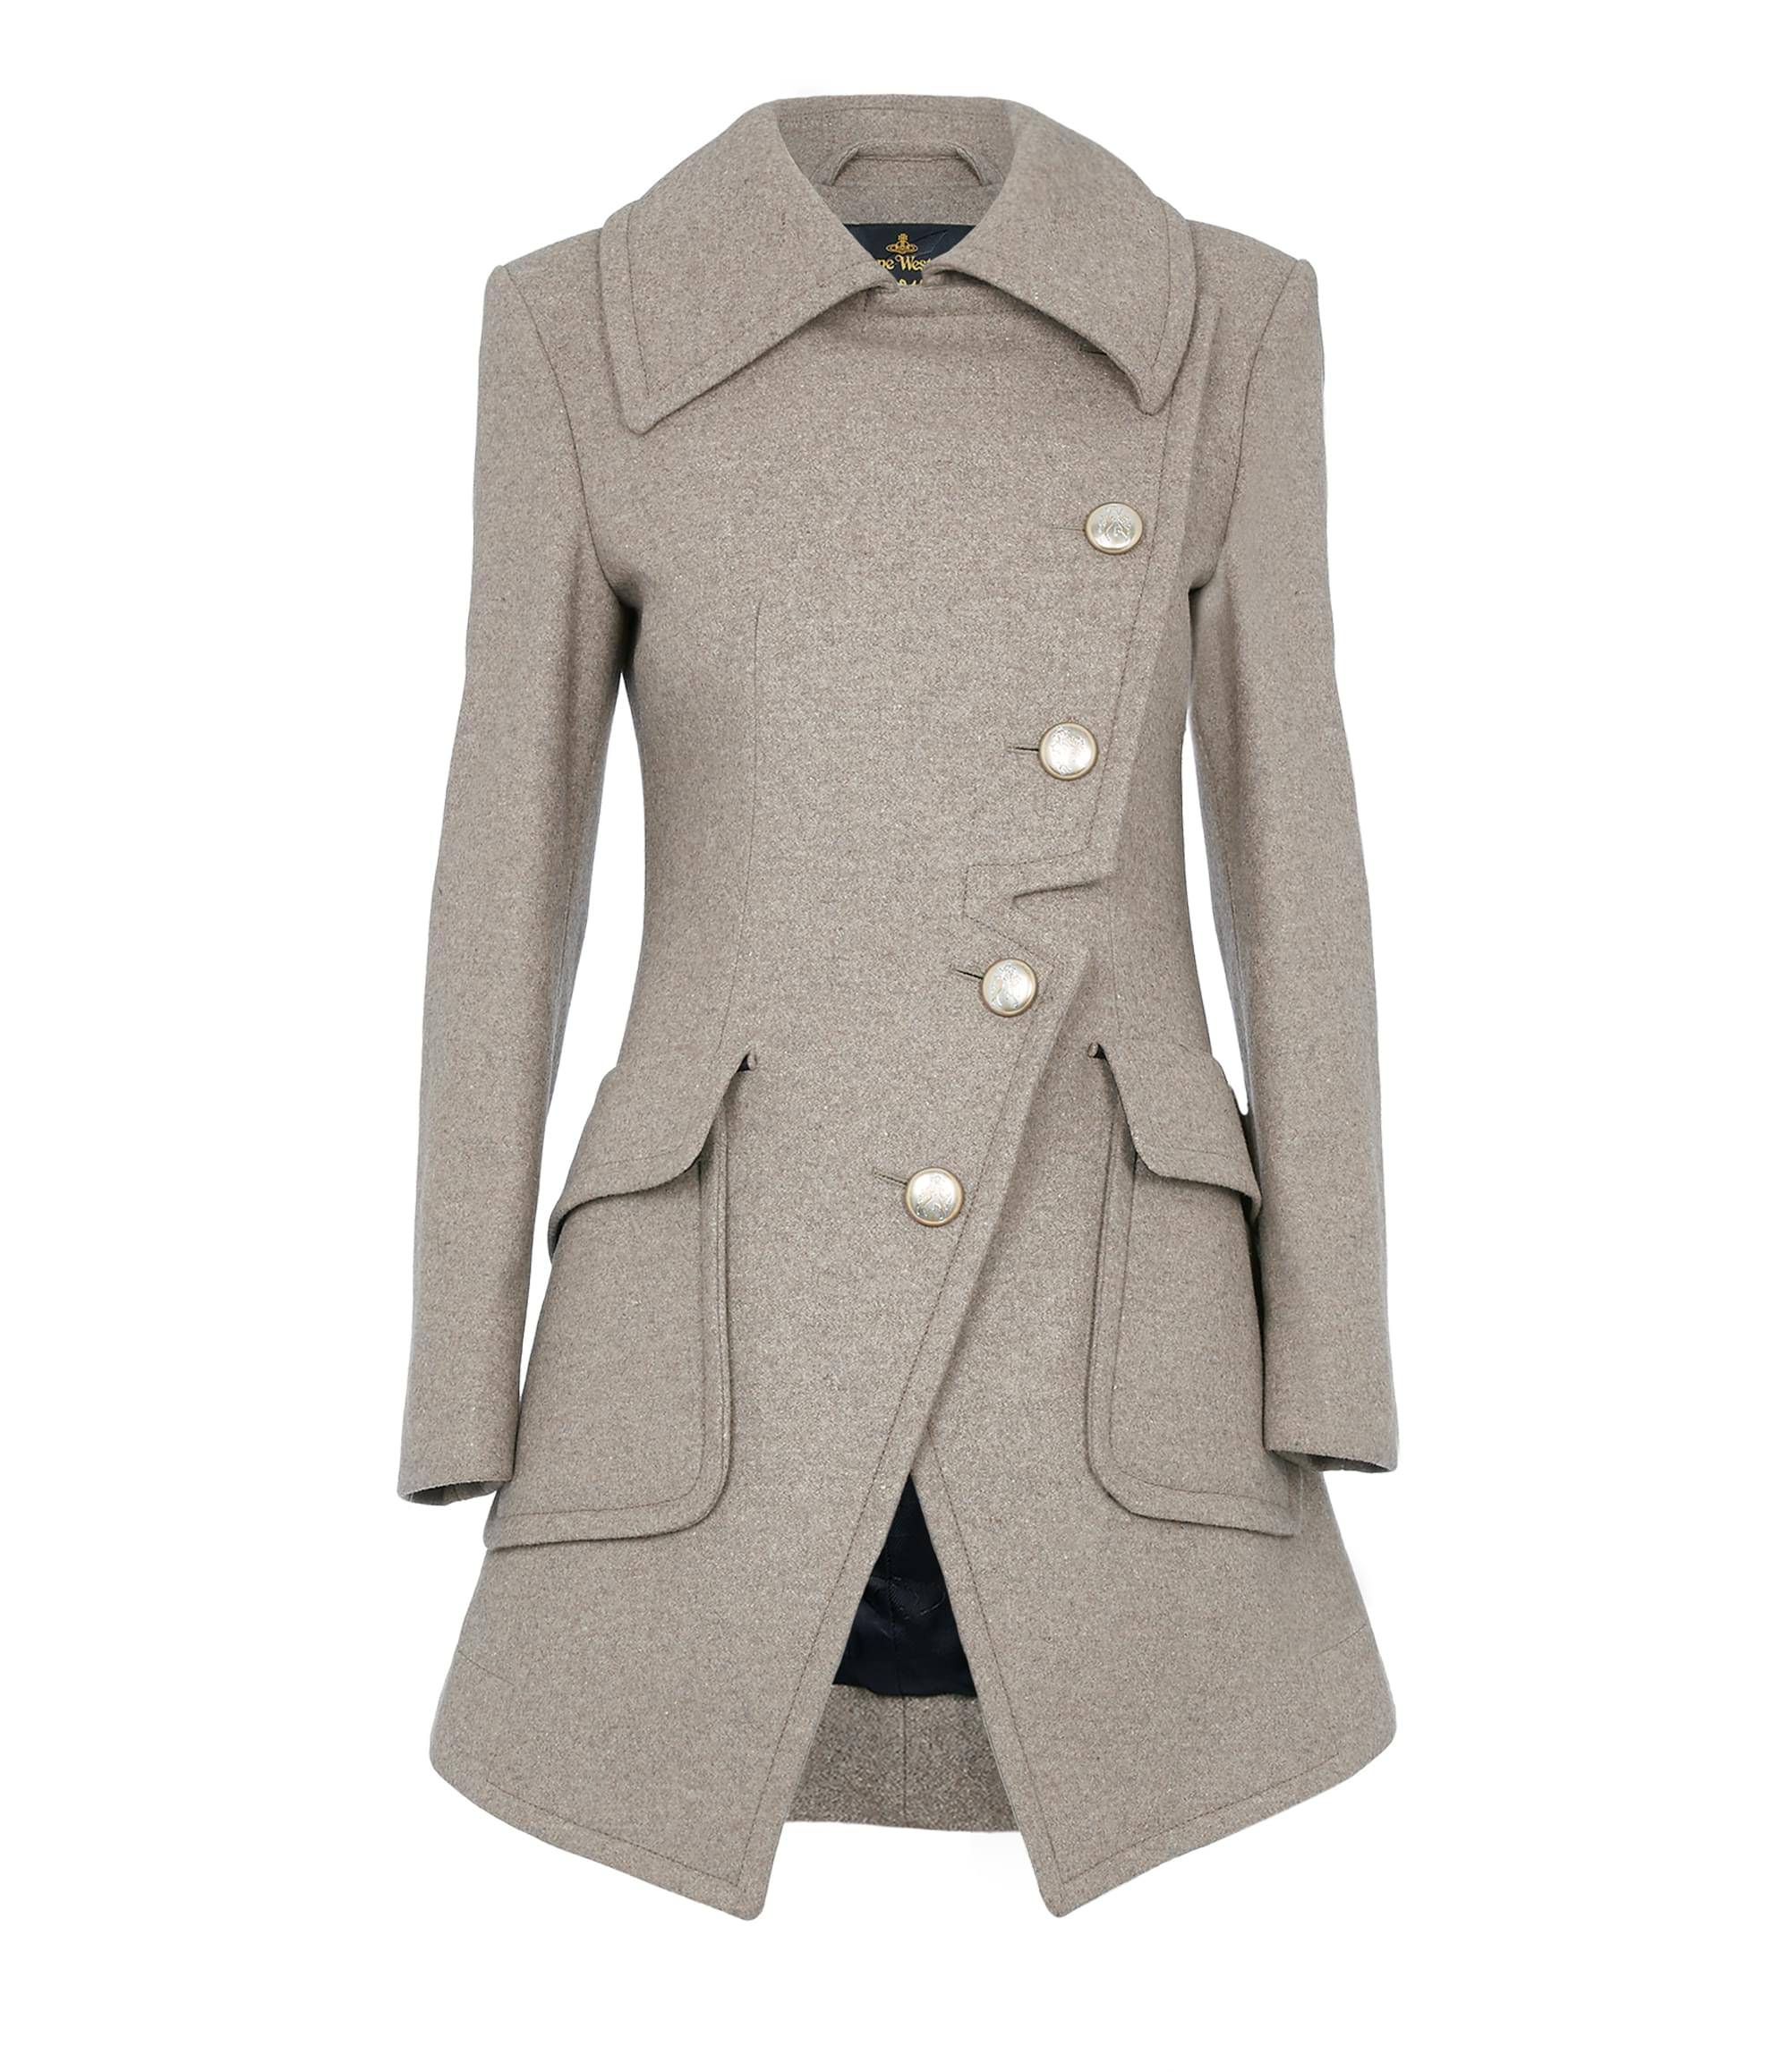 Vivienne Westwood Oatmeal Military Coat